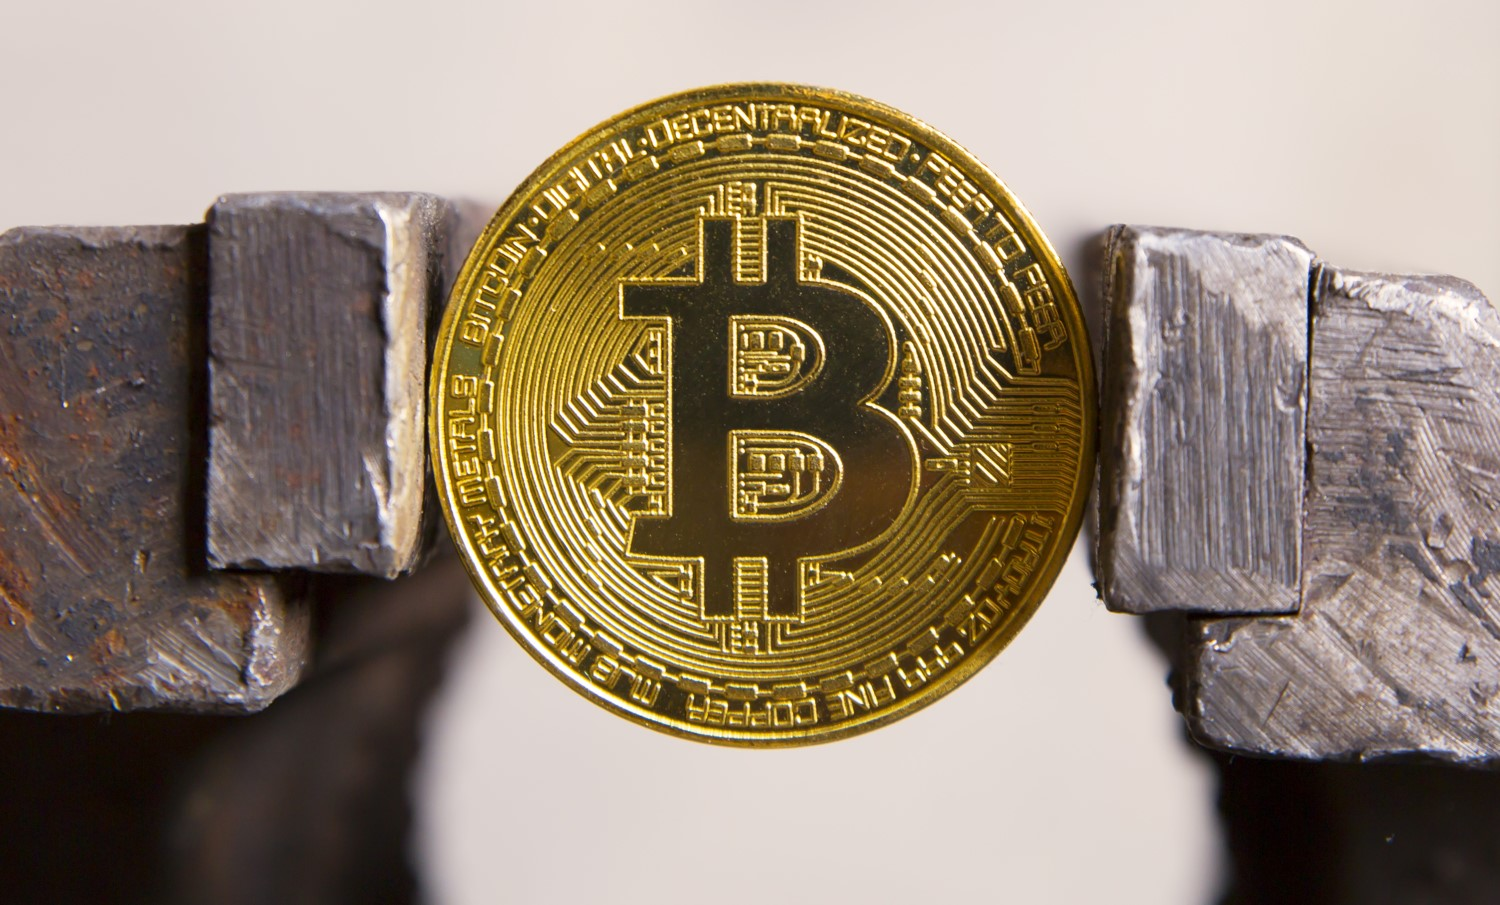 No Man's Land: Bitcoin Price Locked in $600 Range for 7th